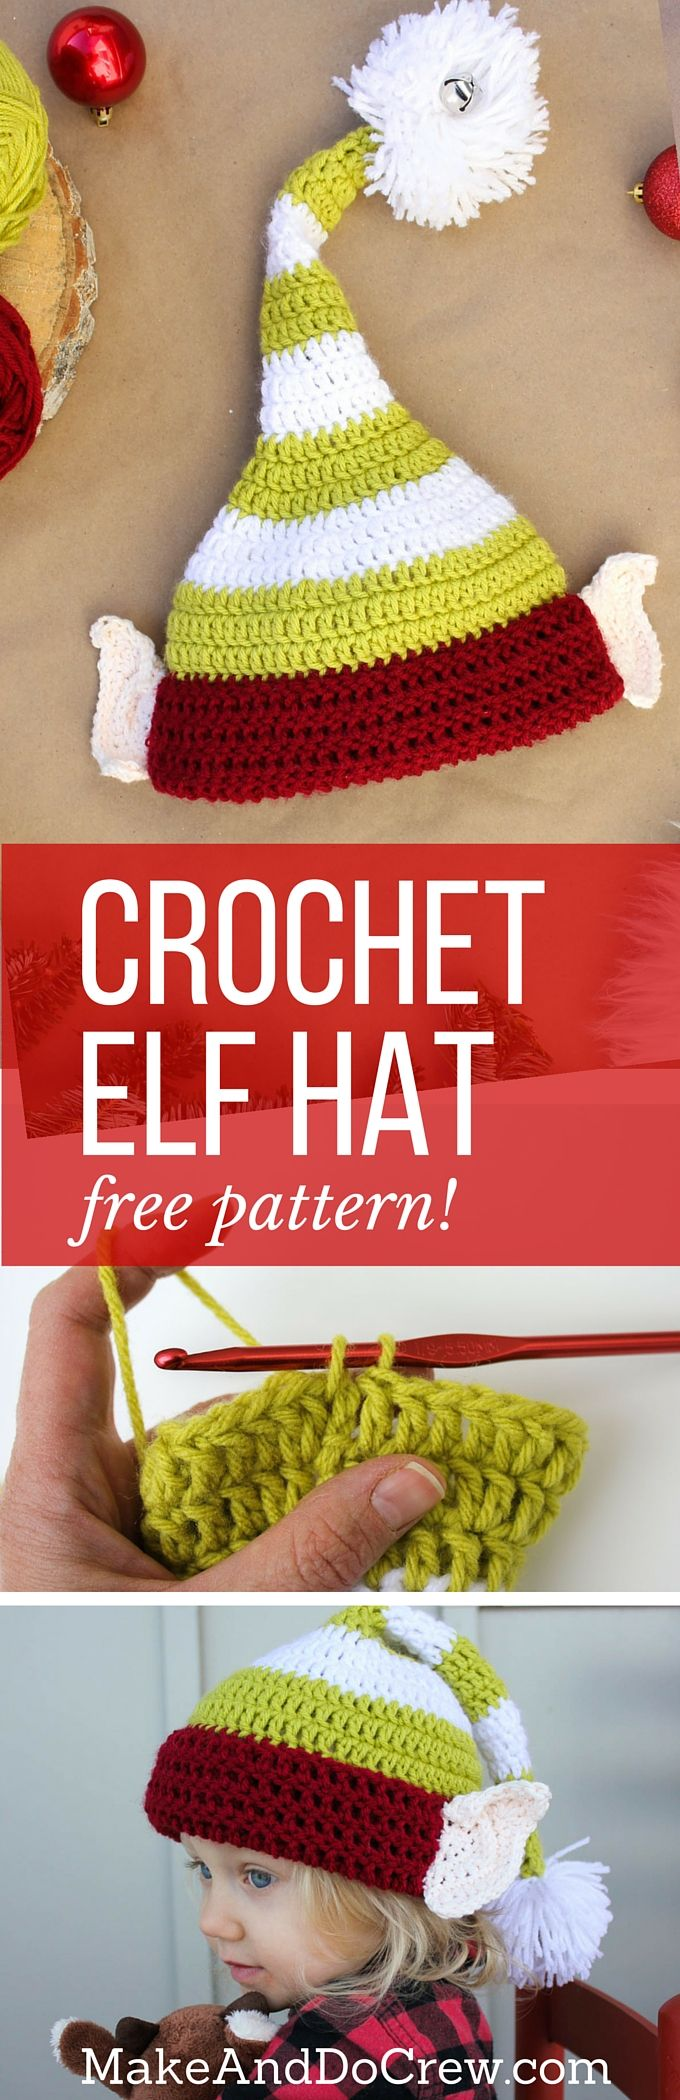 Free crochet elf hat pattern with ears! Make one for each member of the  family. Perfect Christmas photo prop idea. Free pattern sizes include 0-3  months ... c1b921e6e33